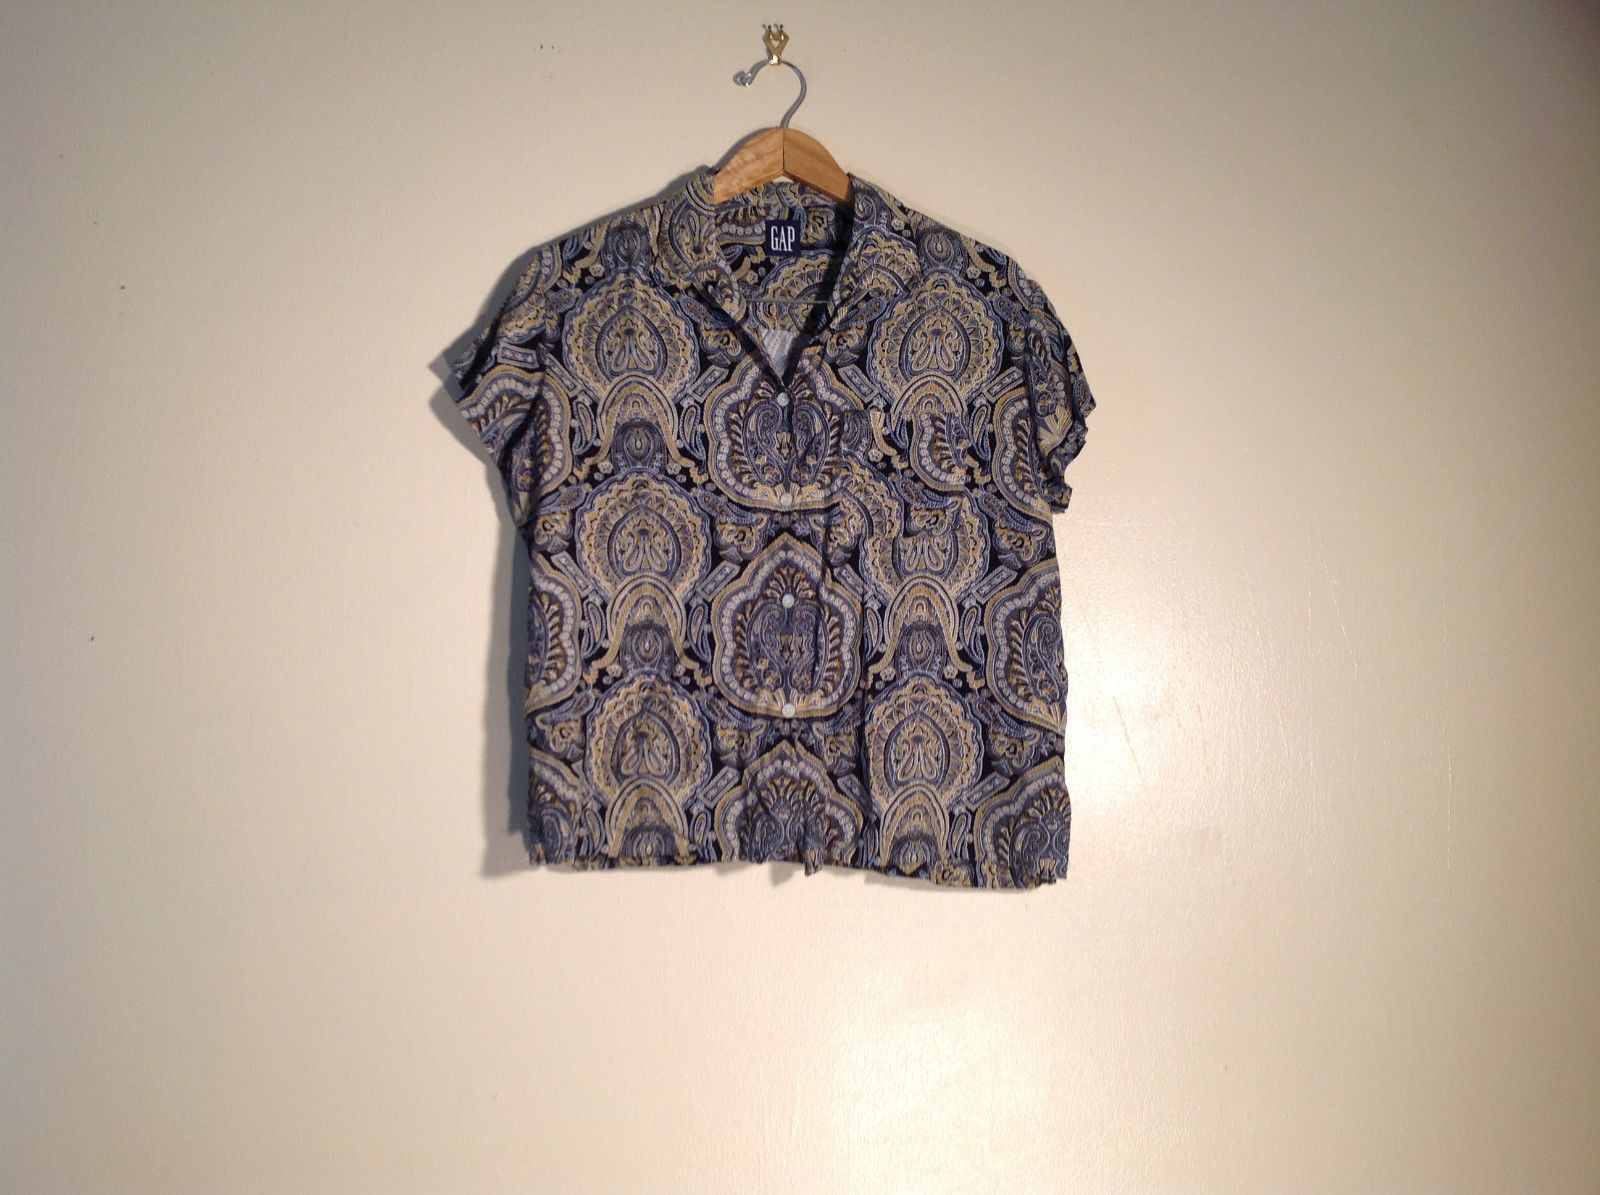 Unisex button-up shirt Gap light fabric floral design excellent